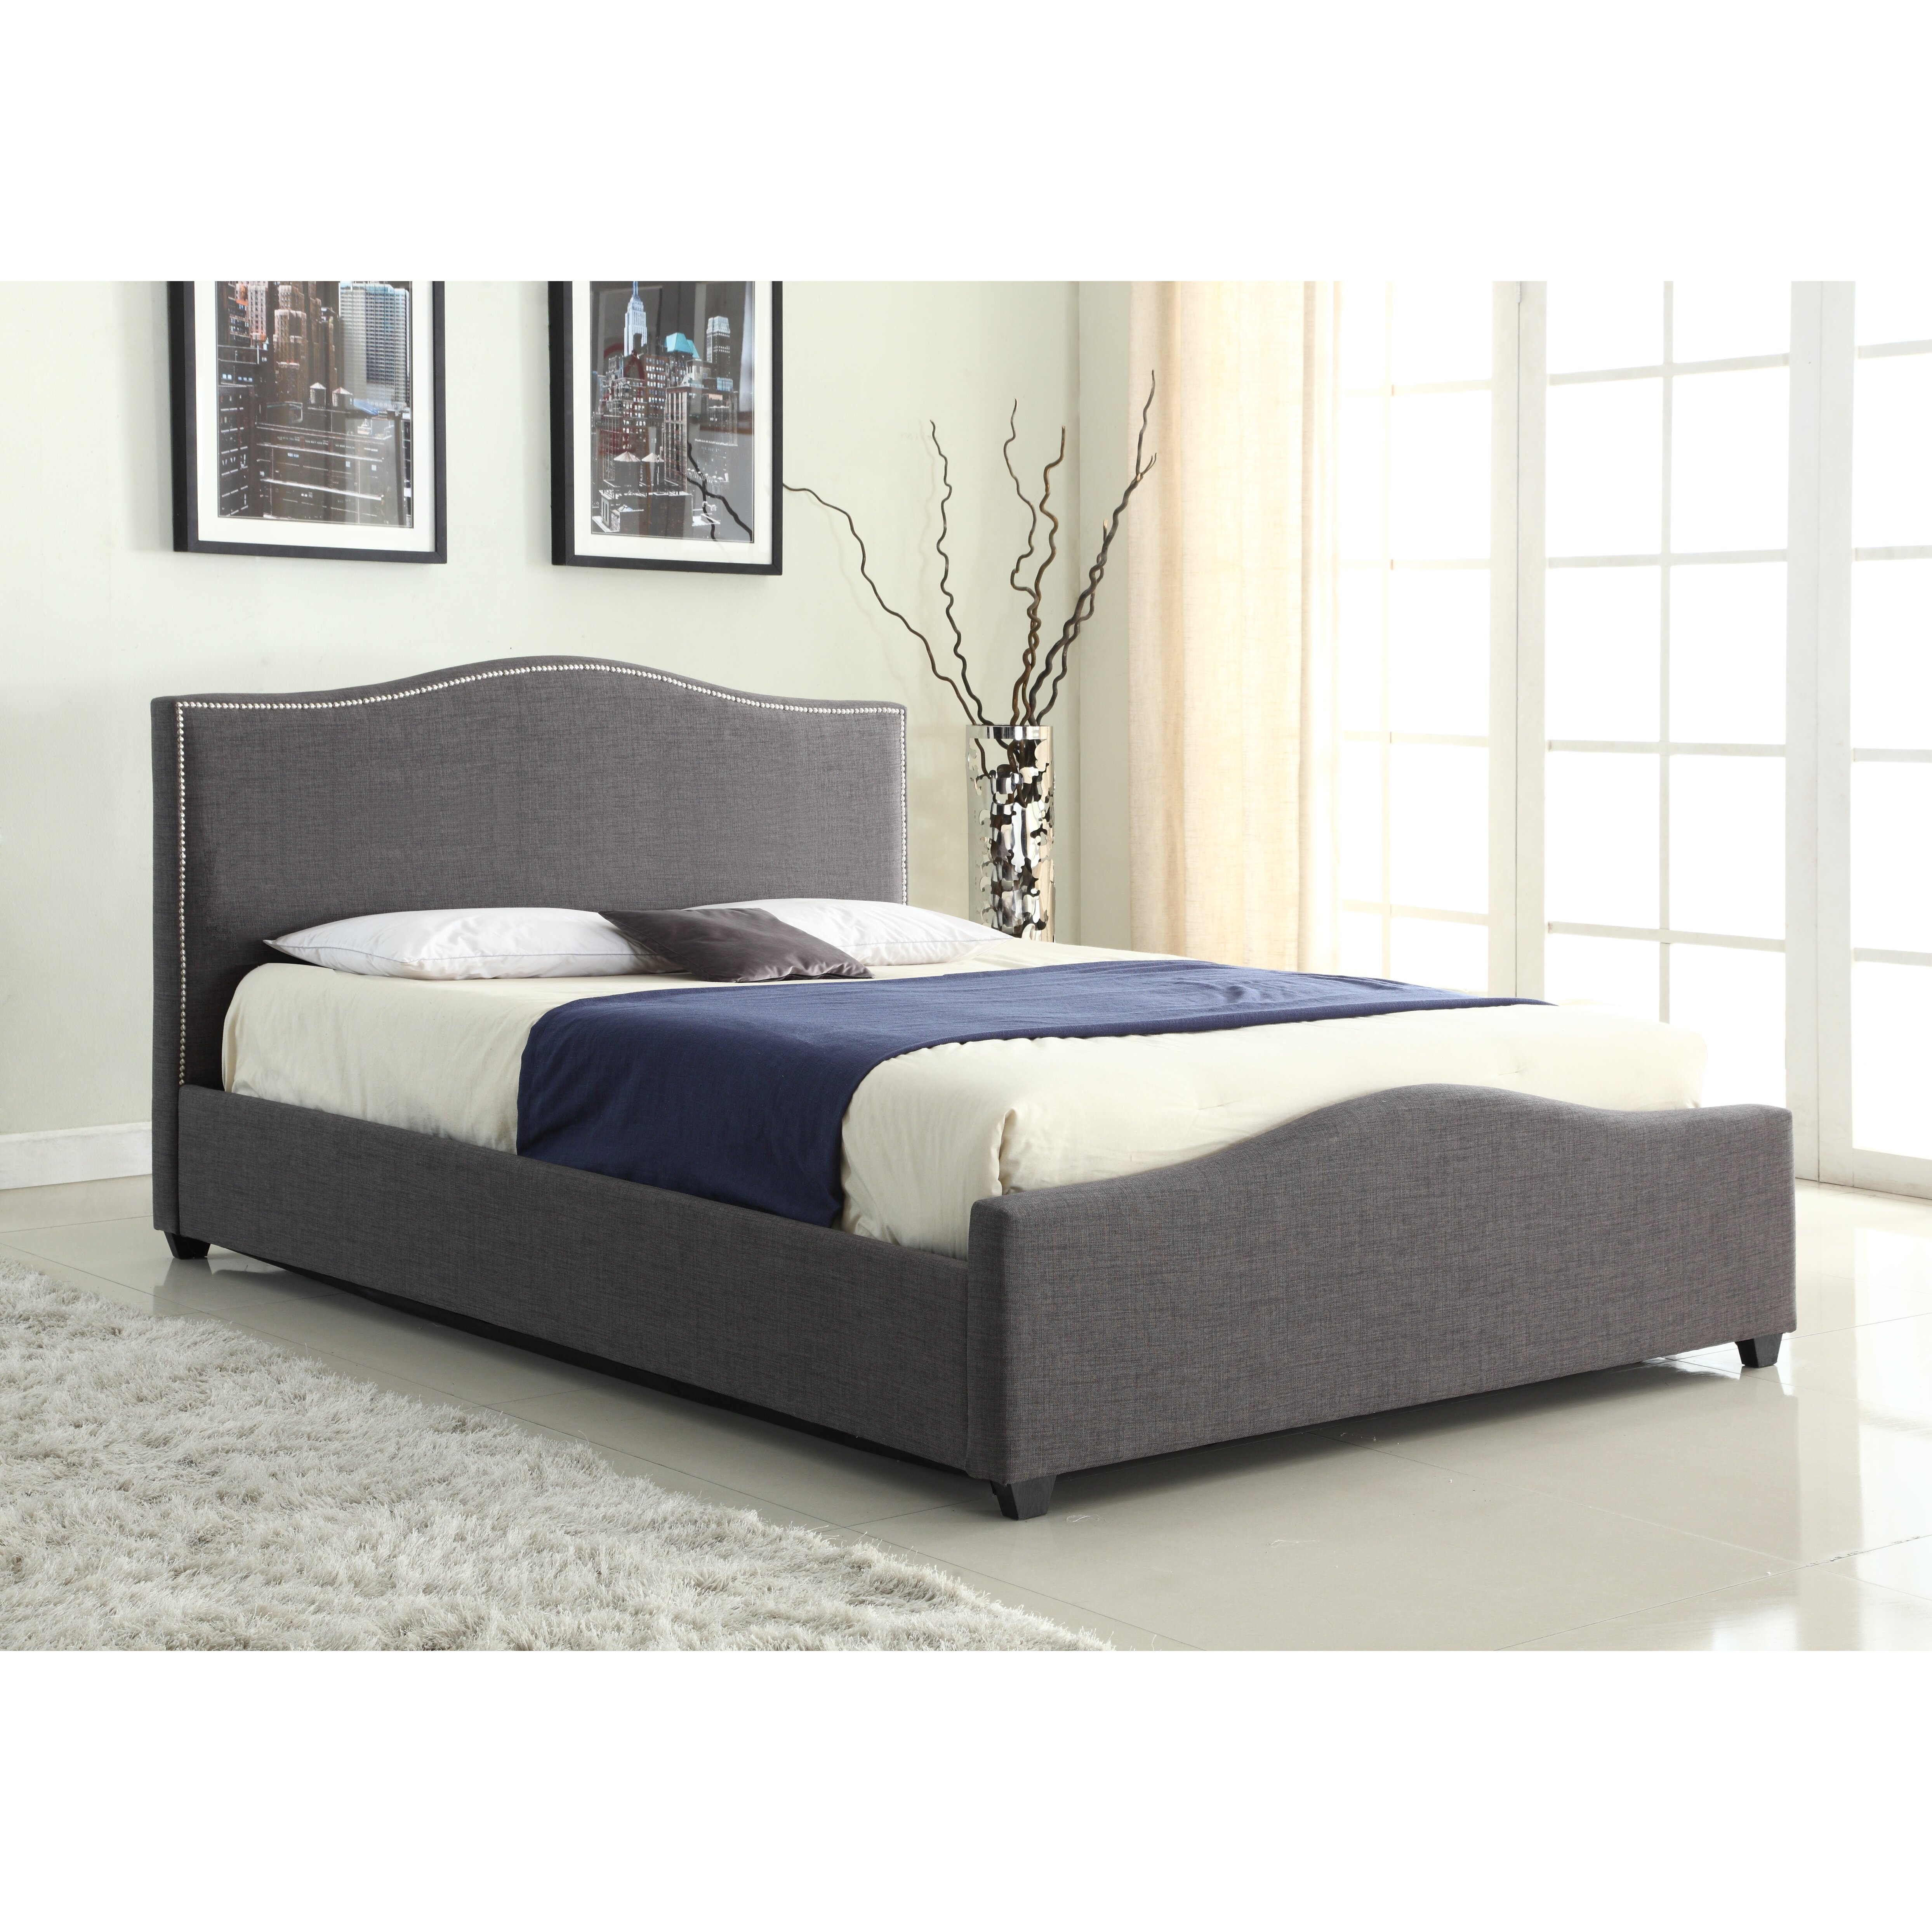 Ottoman Bedroom Furniture Heartlands Elle Upholstered Ottoman Bed Reviews Wayfaircouk